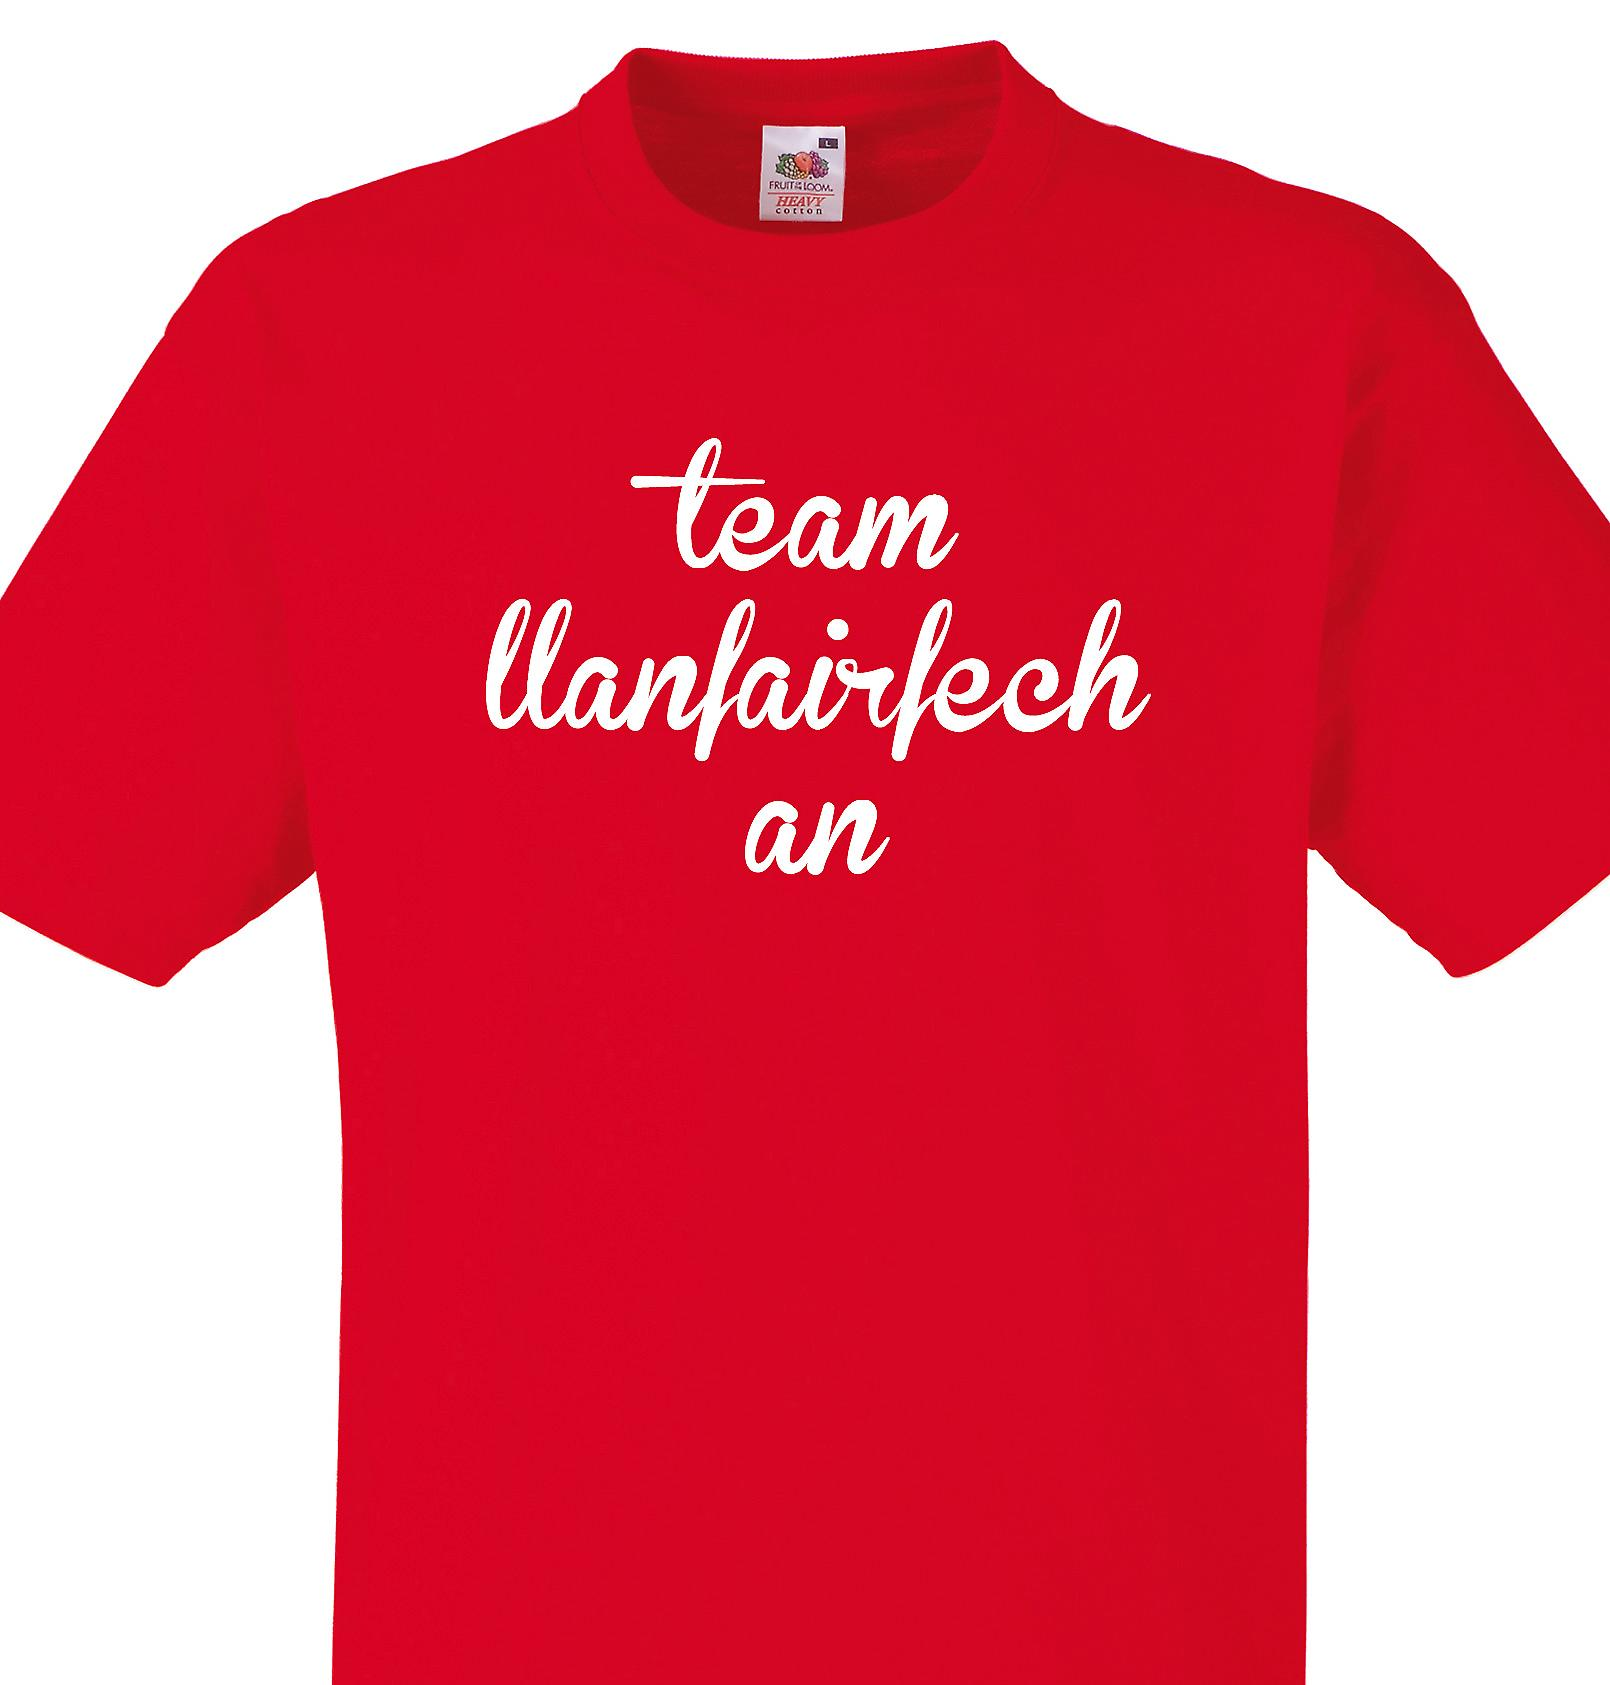 Team Llanfairfechan Red T shirt